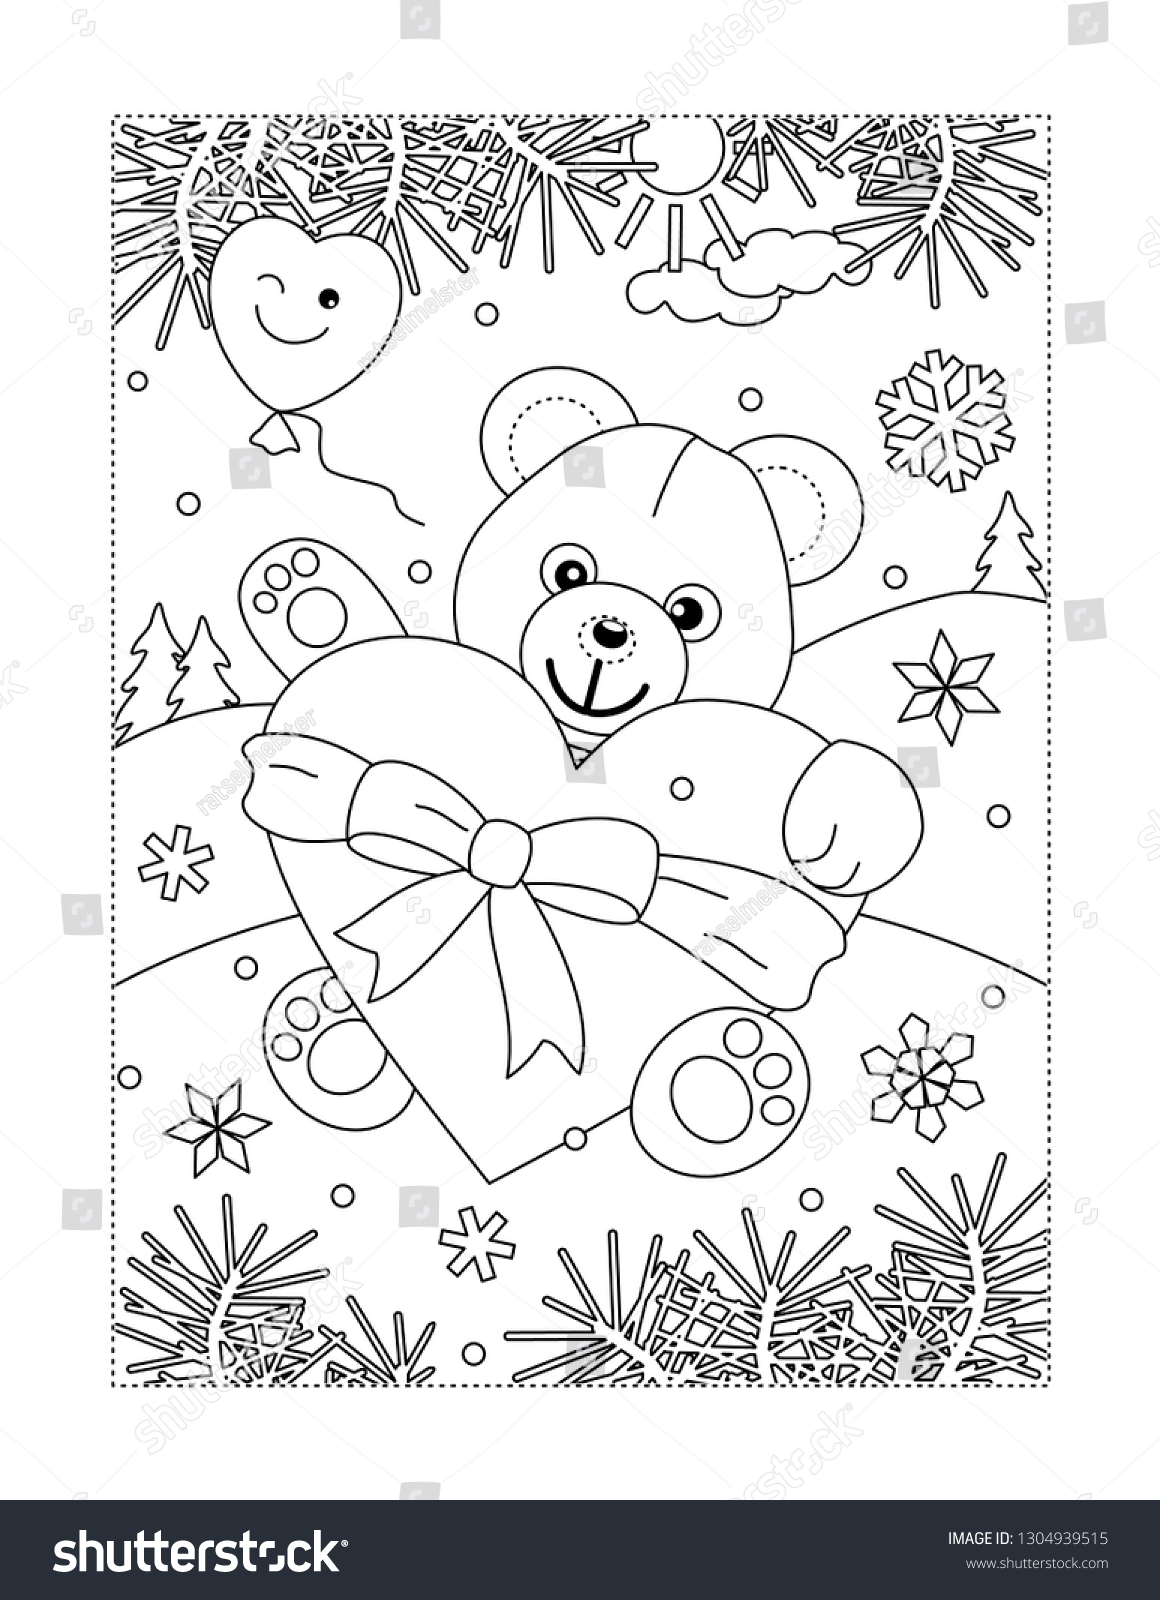 Valentine's Day Coloring Page For Children Or Adults Royalty Free ...   1600x1160